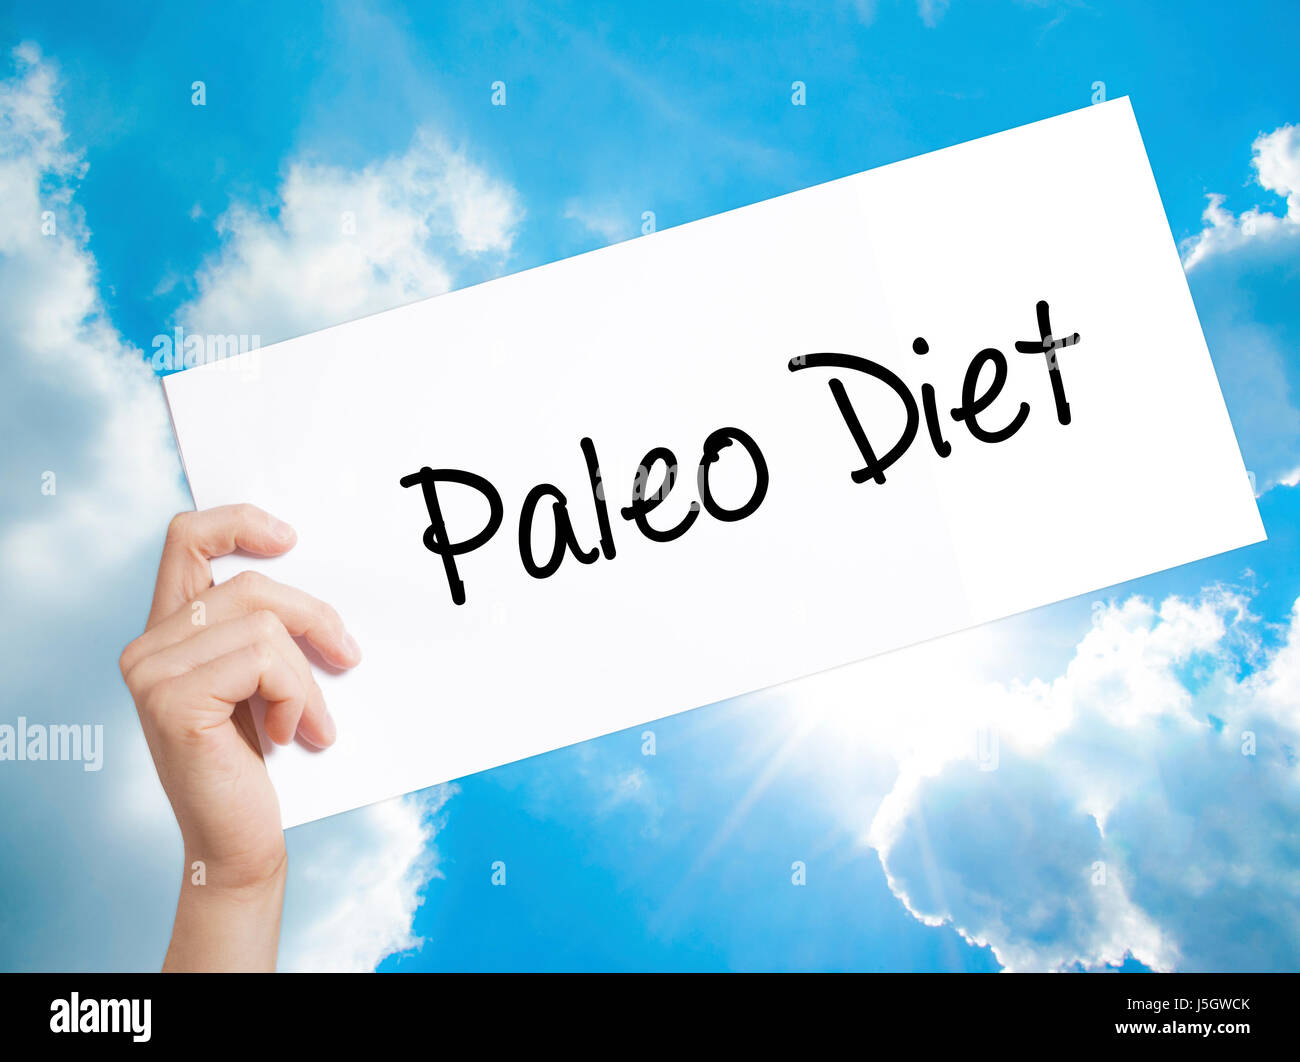 Paleo Diet Sign on white paper. Man Hand Holding Paper with text. Isolated on sky background.   Business concept. - Stock Image